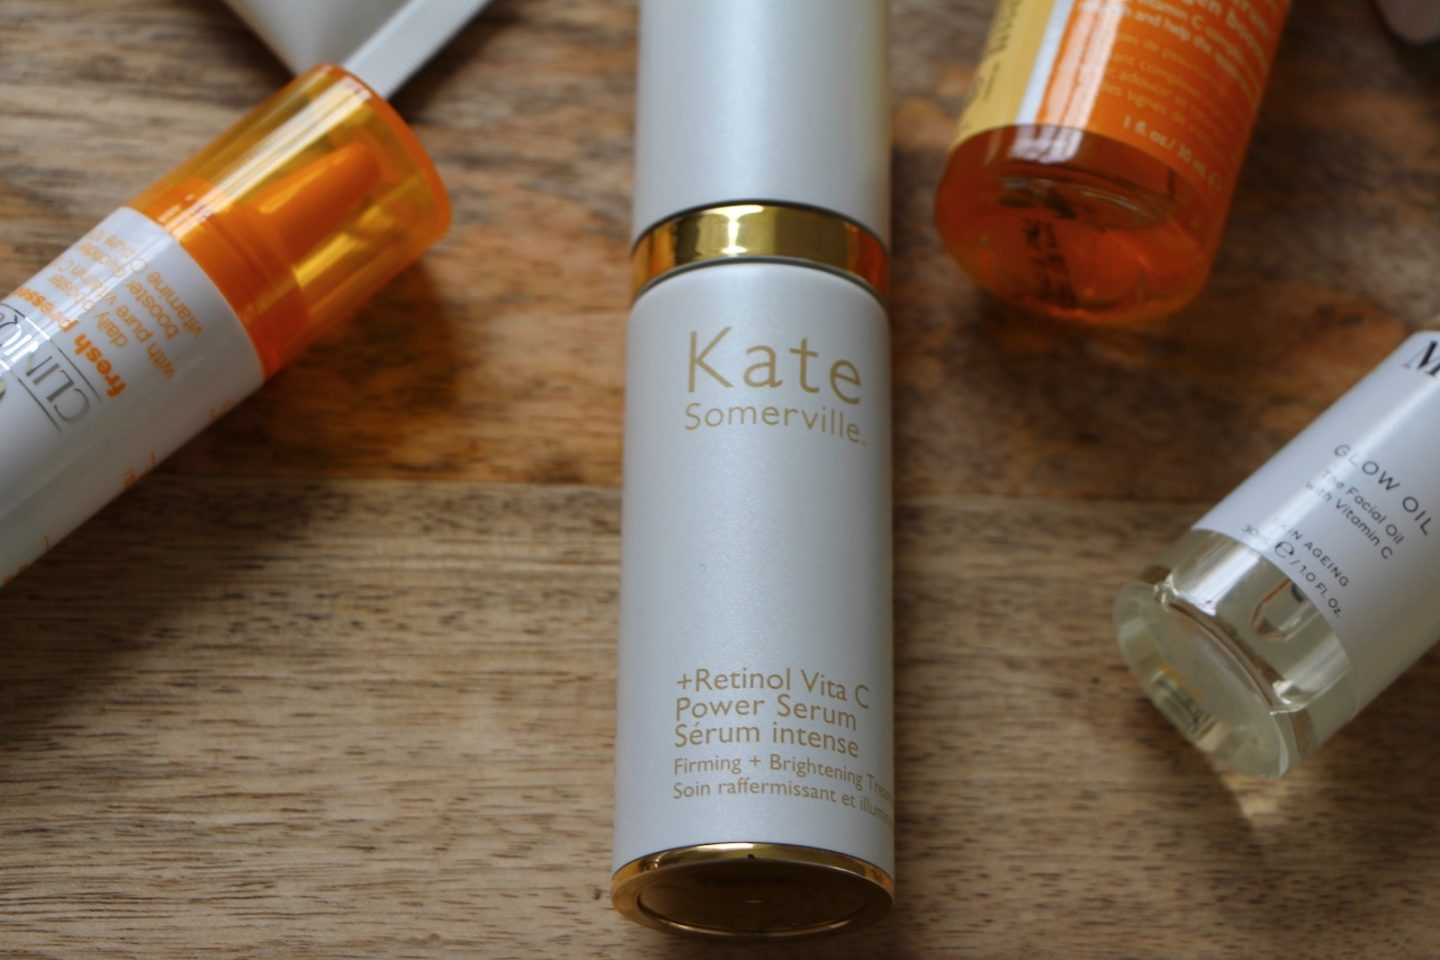 kate somerville retinol power serum